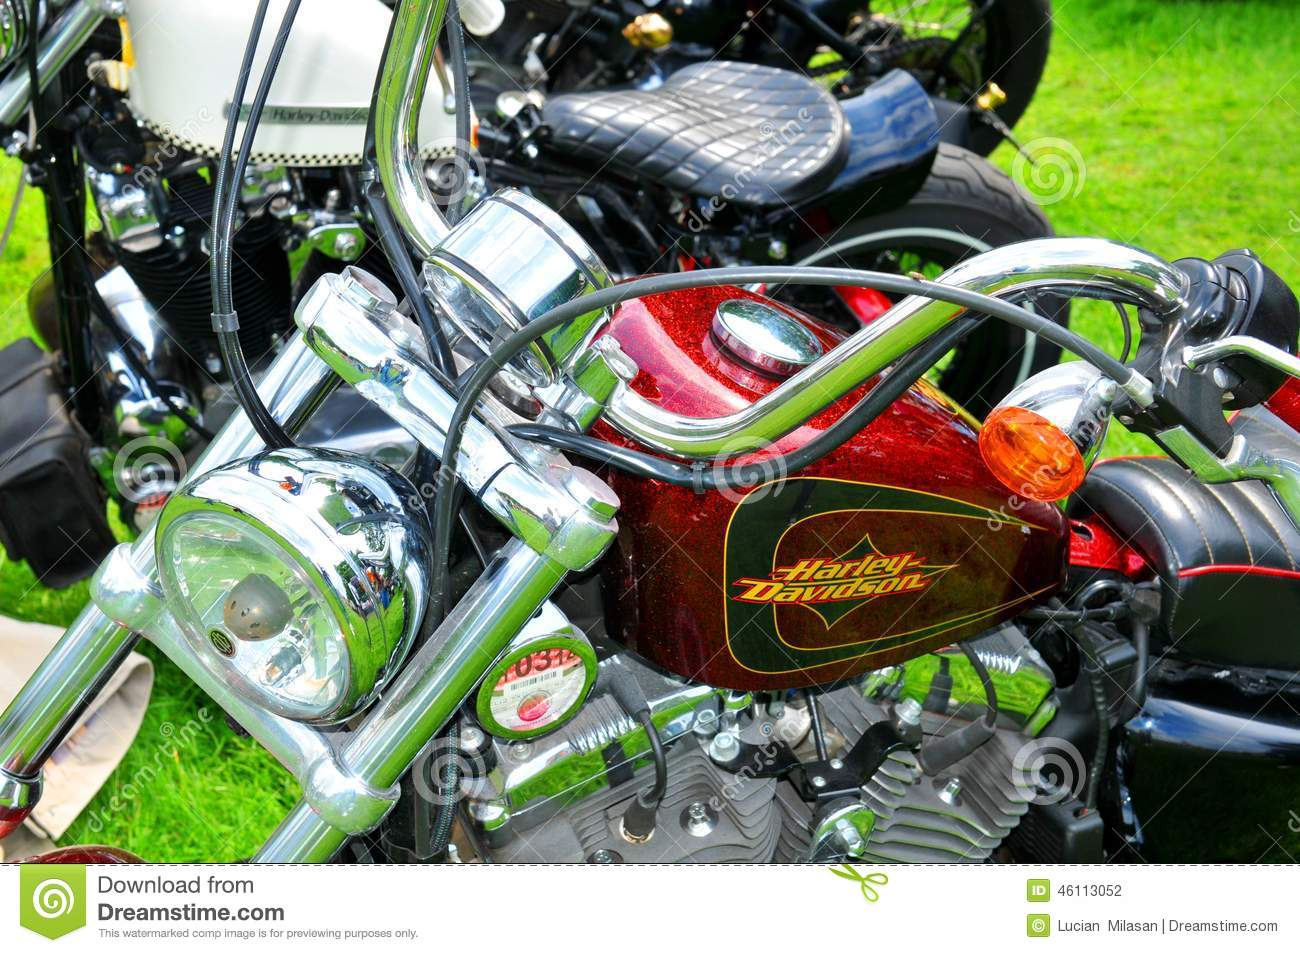 Harley Motorcycles For Sale >> Harley Davidson Editorial Photography Image Of Engine